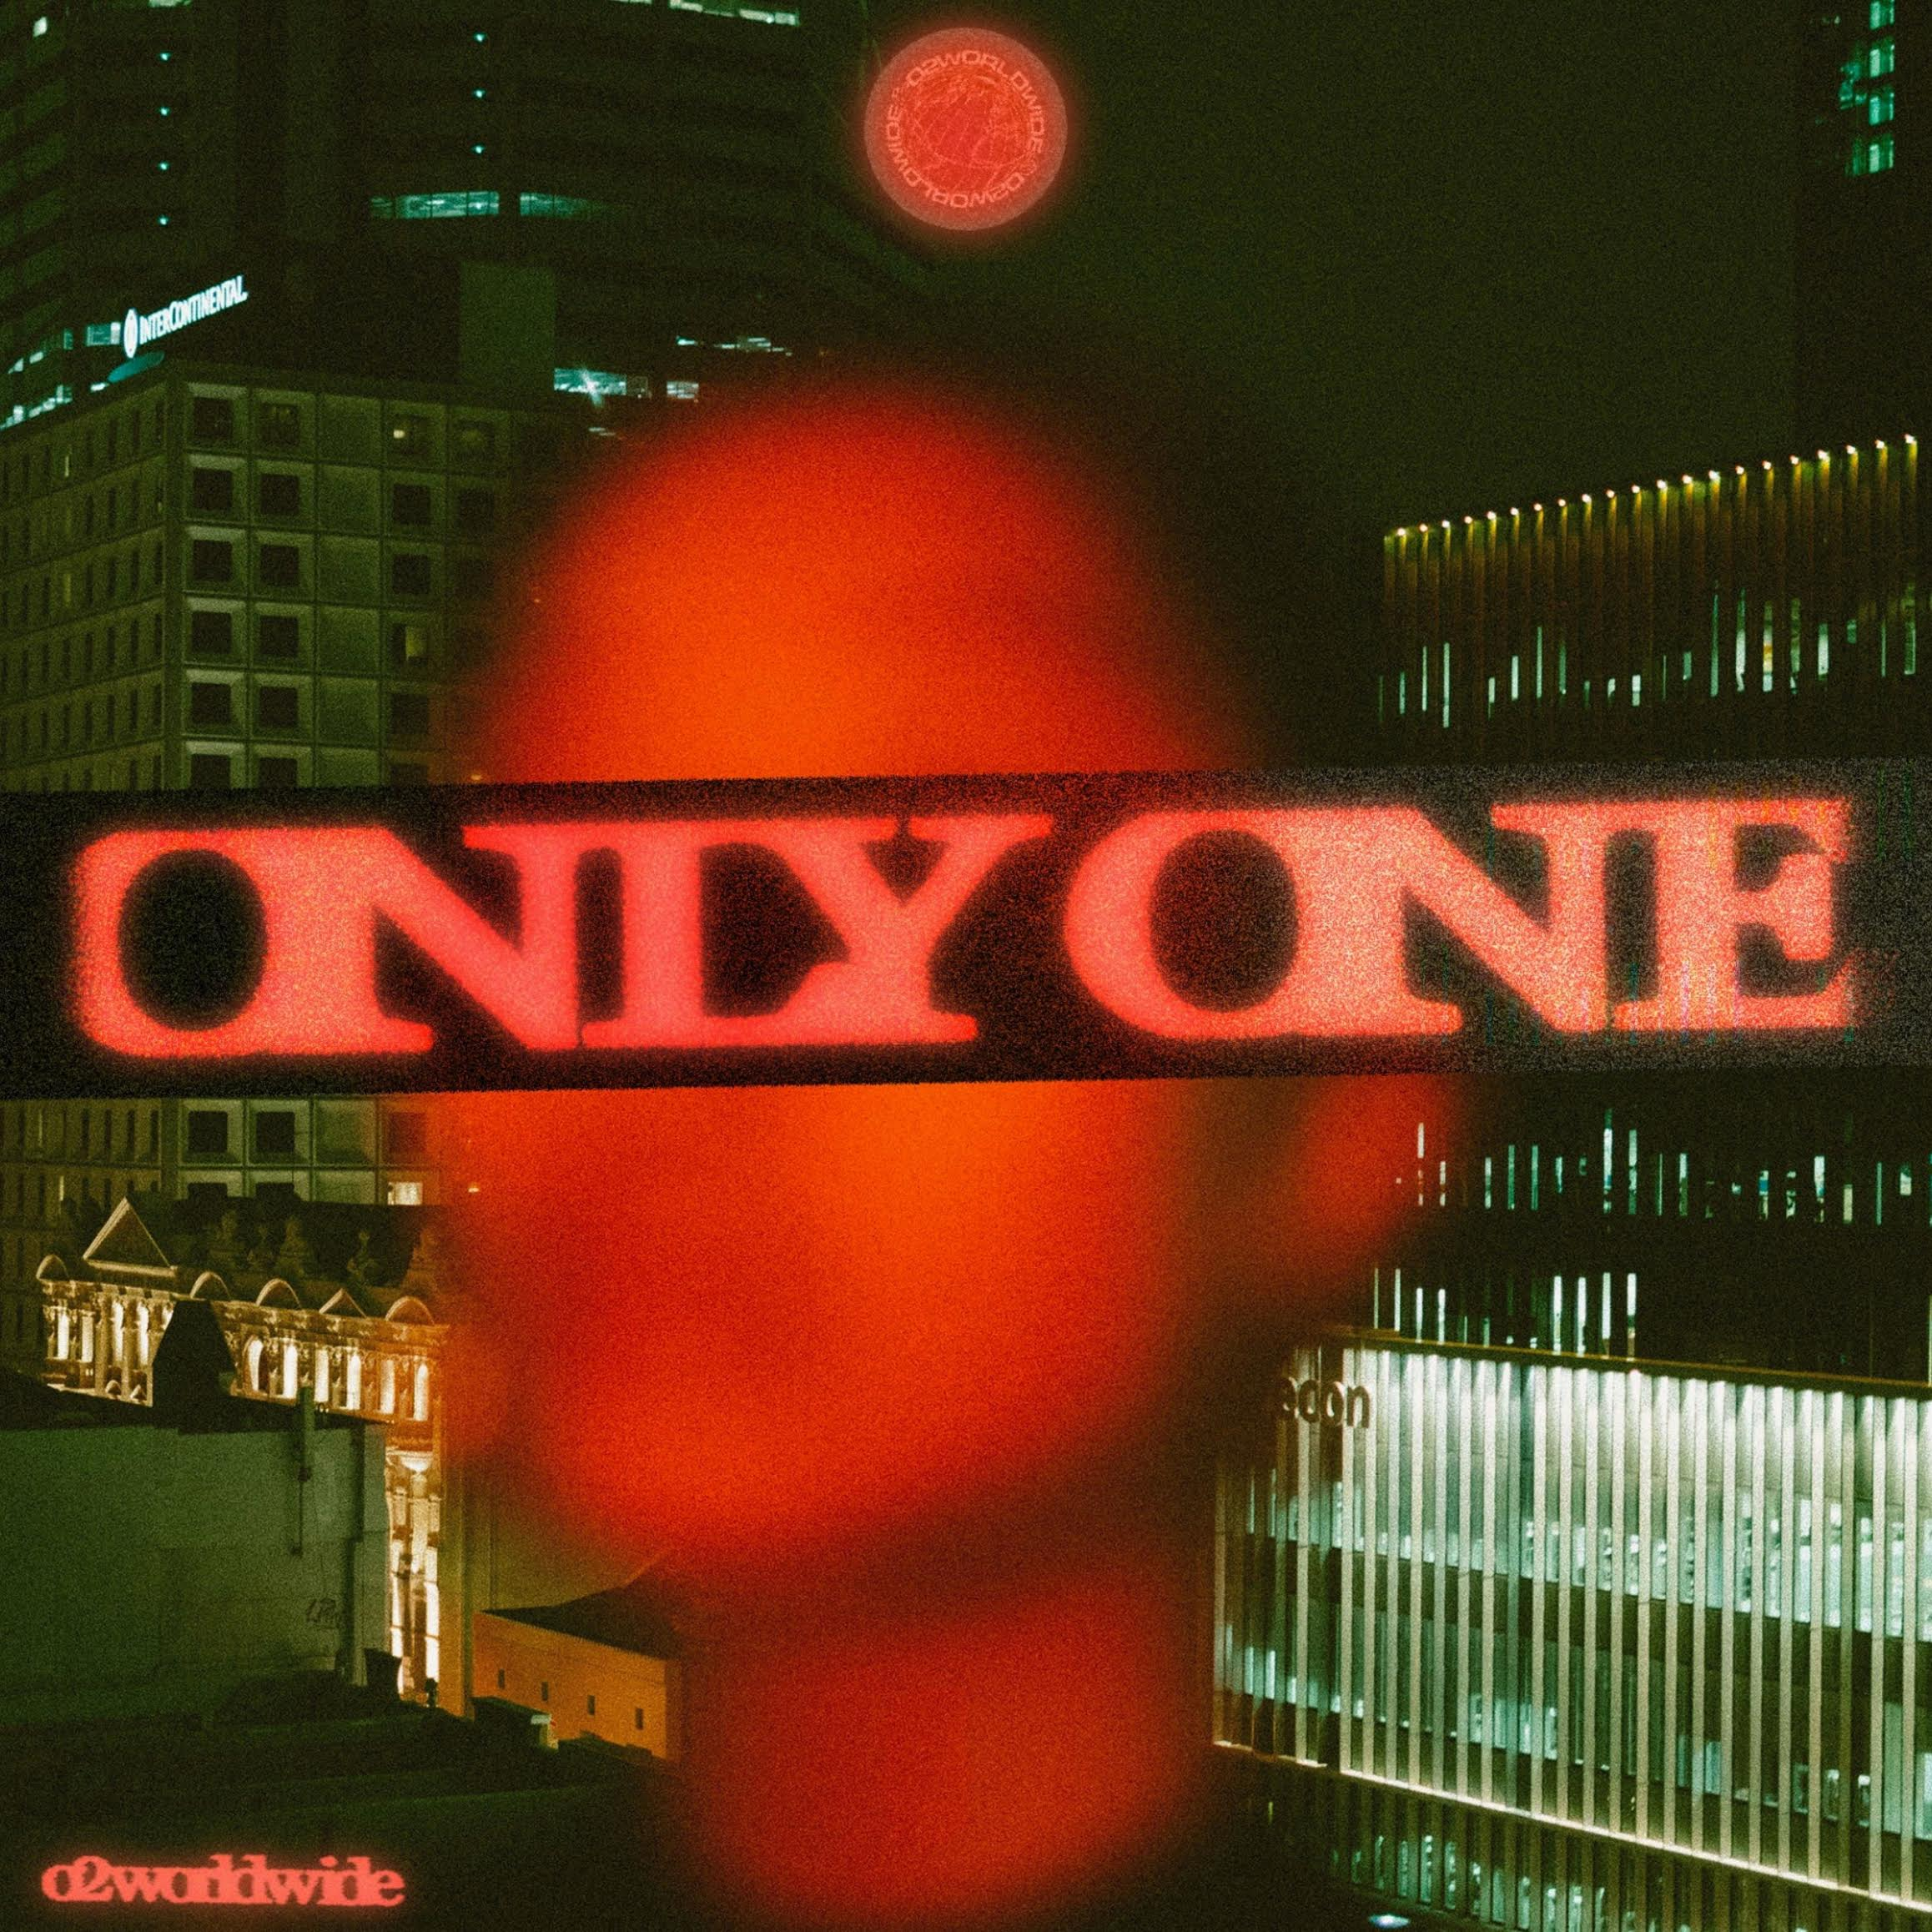 ONLY ONE – [O2worldwide]